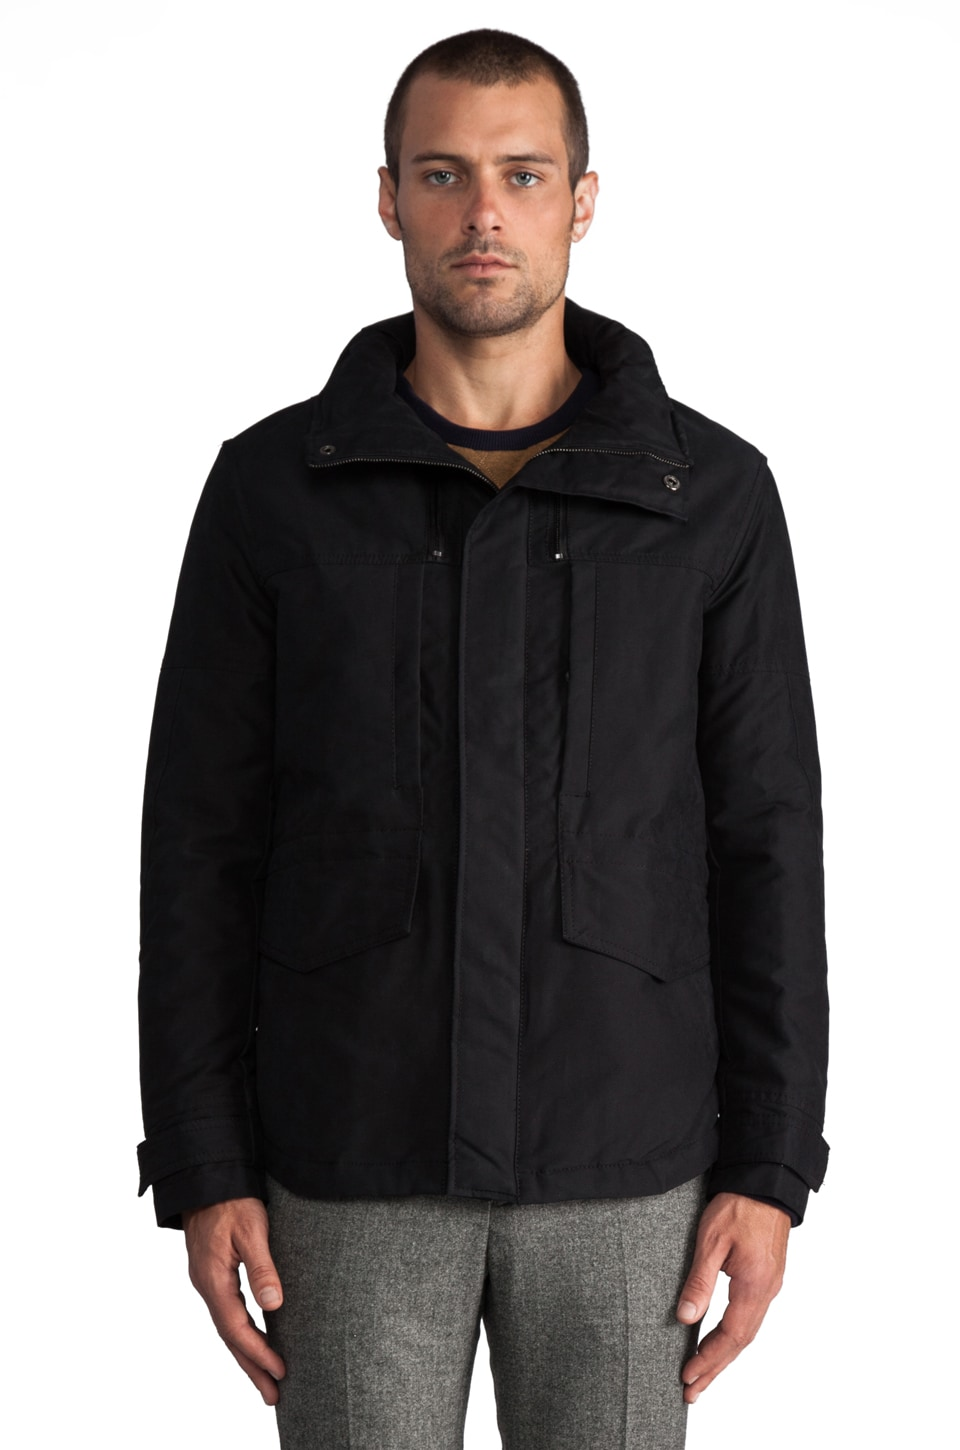 Kai-aakmann Hooded Jacket in Black